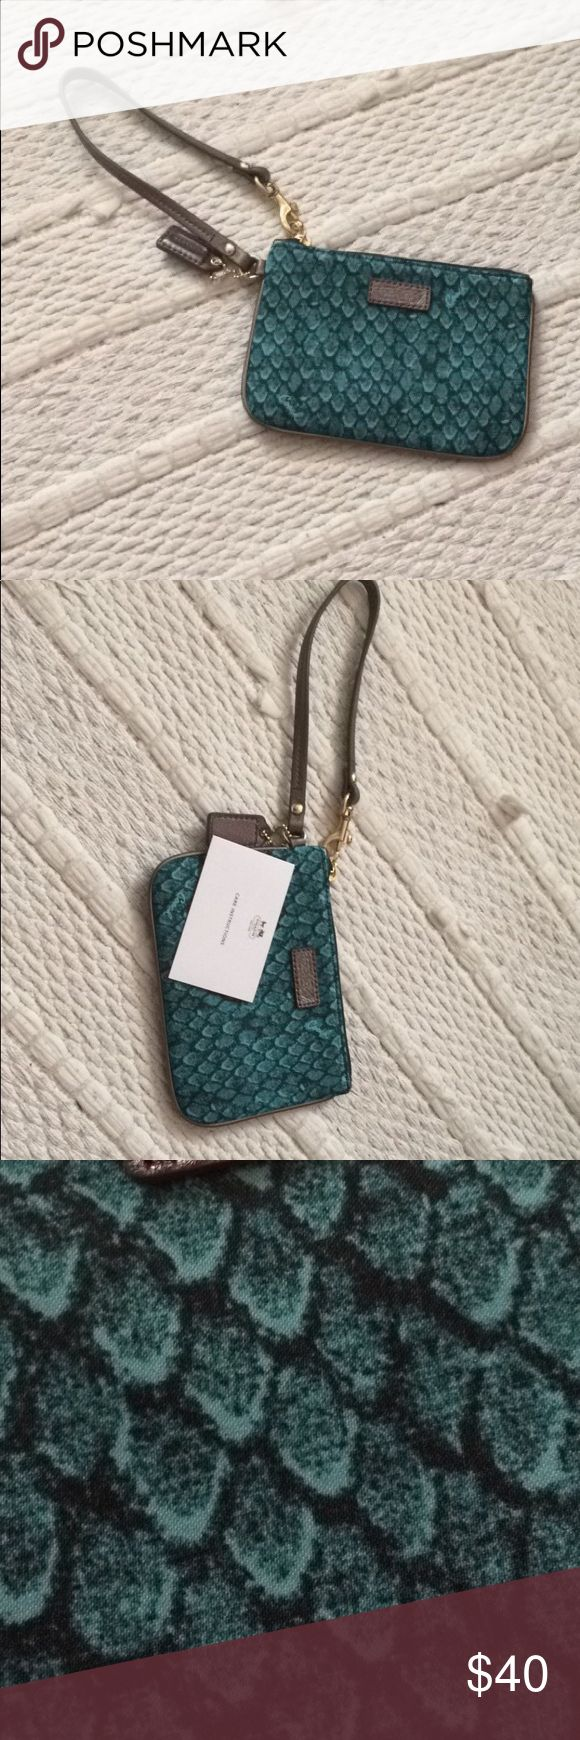 Coach wristlet Turquoise coach wristlet. Never used. In perfect condition. Coach Bags Clutches & Wristlets